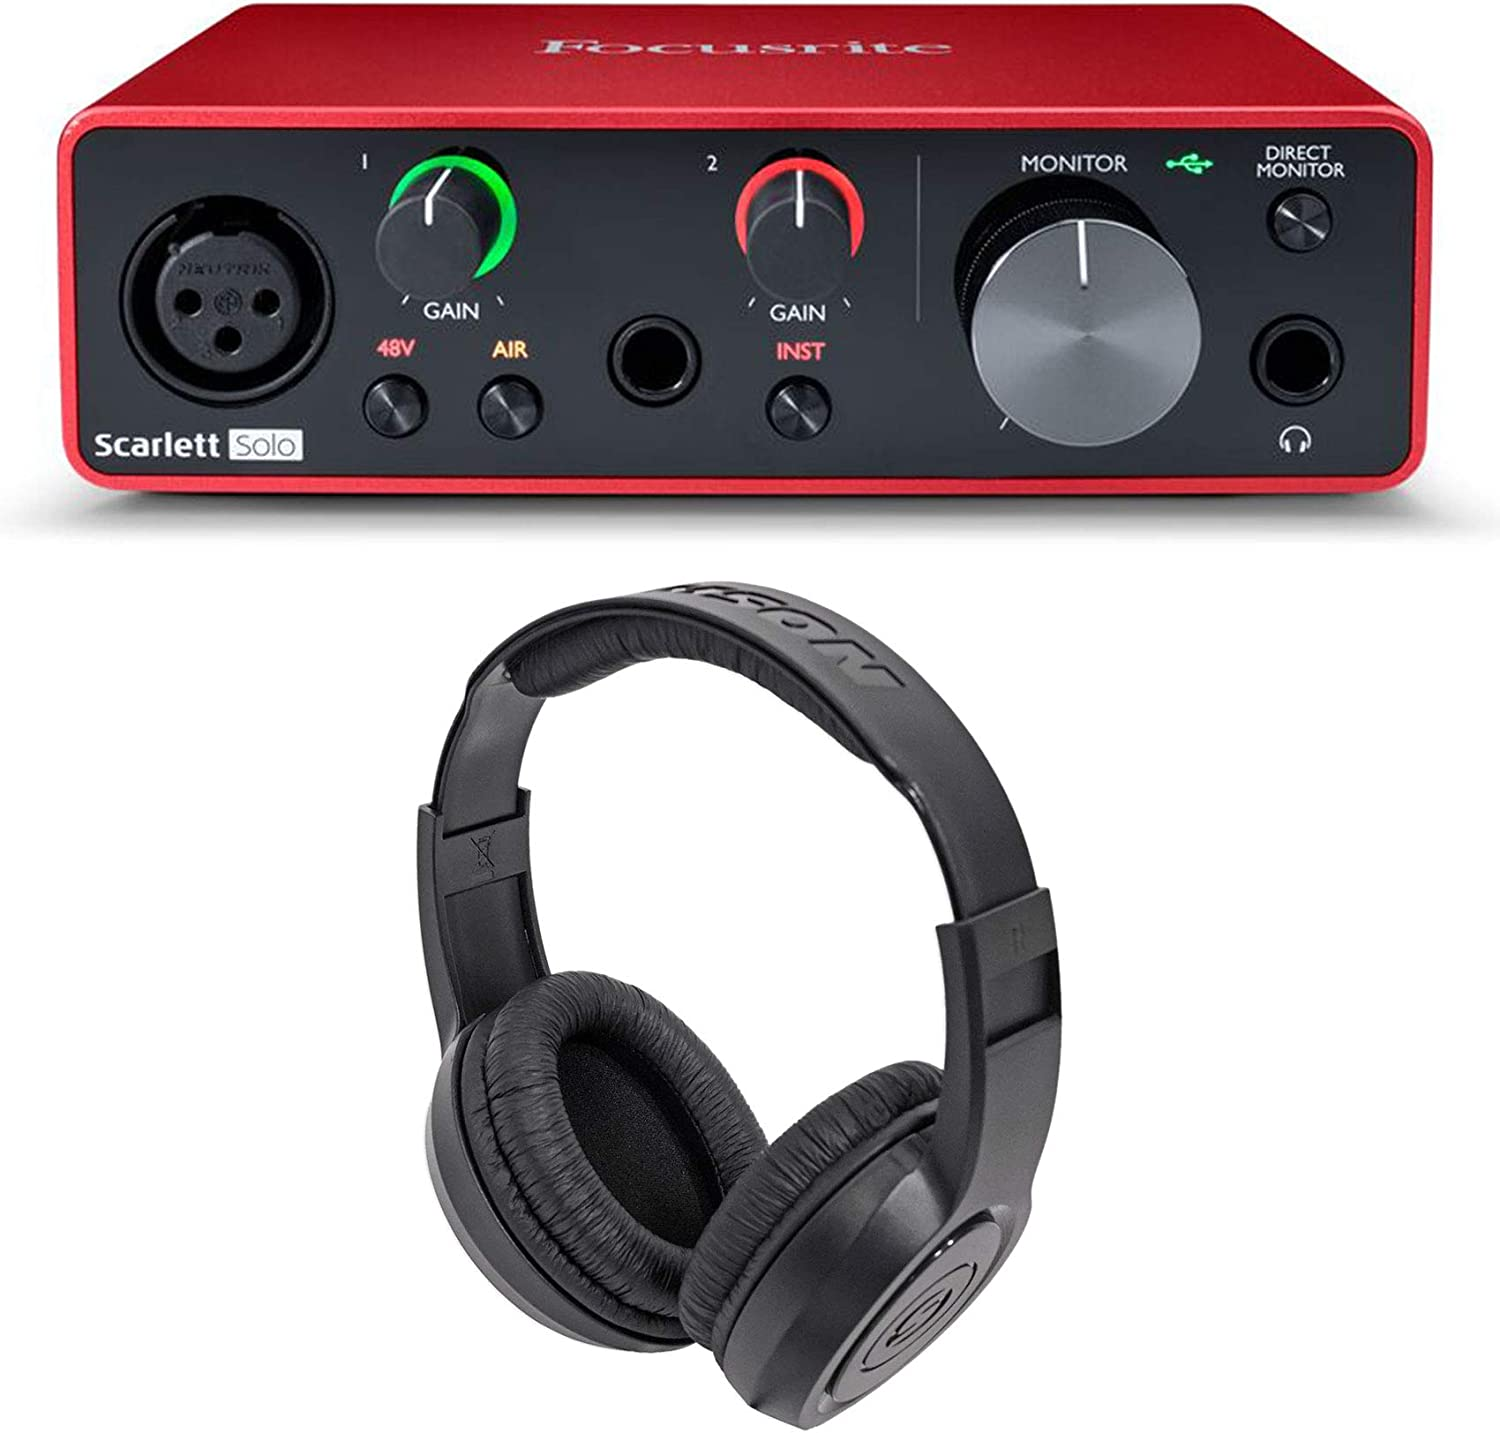 Focusrite SCARLETT SOLO 3rd Inventory cleanup selling sale Gen 192kHz w Audio Interface Max 58% OFF USB Sa